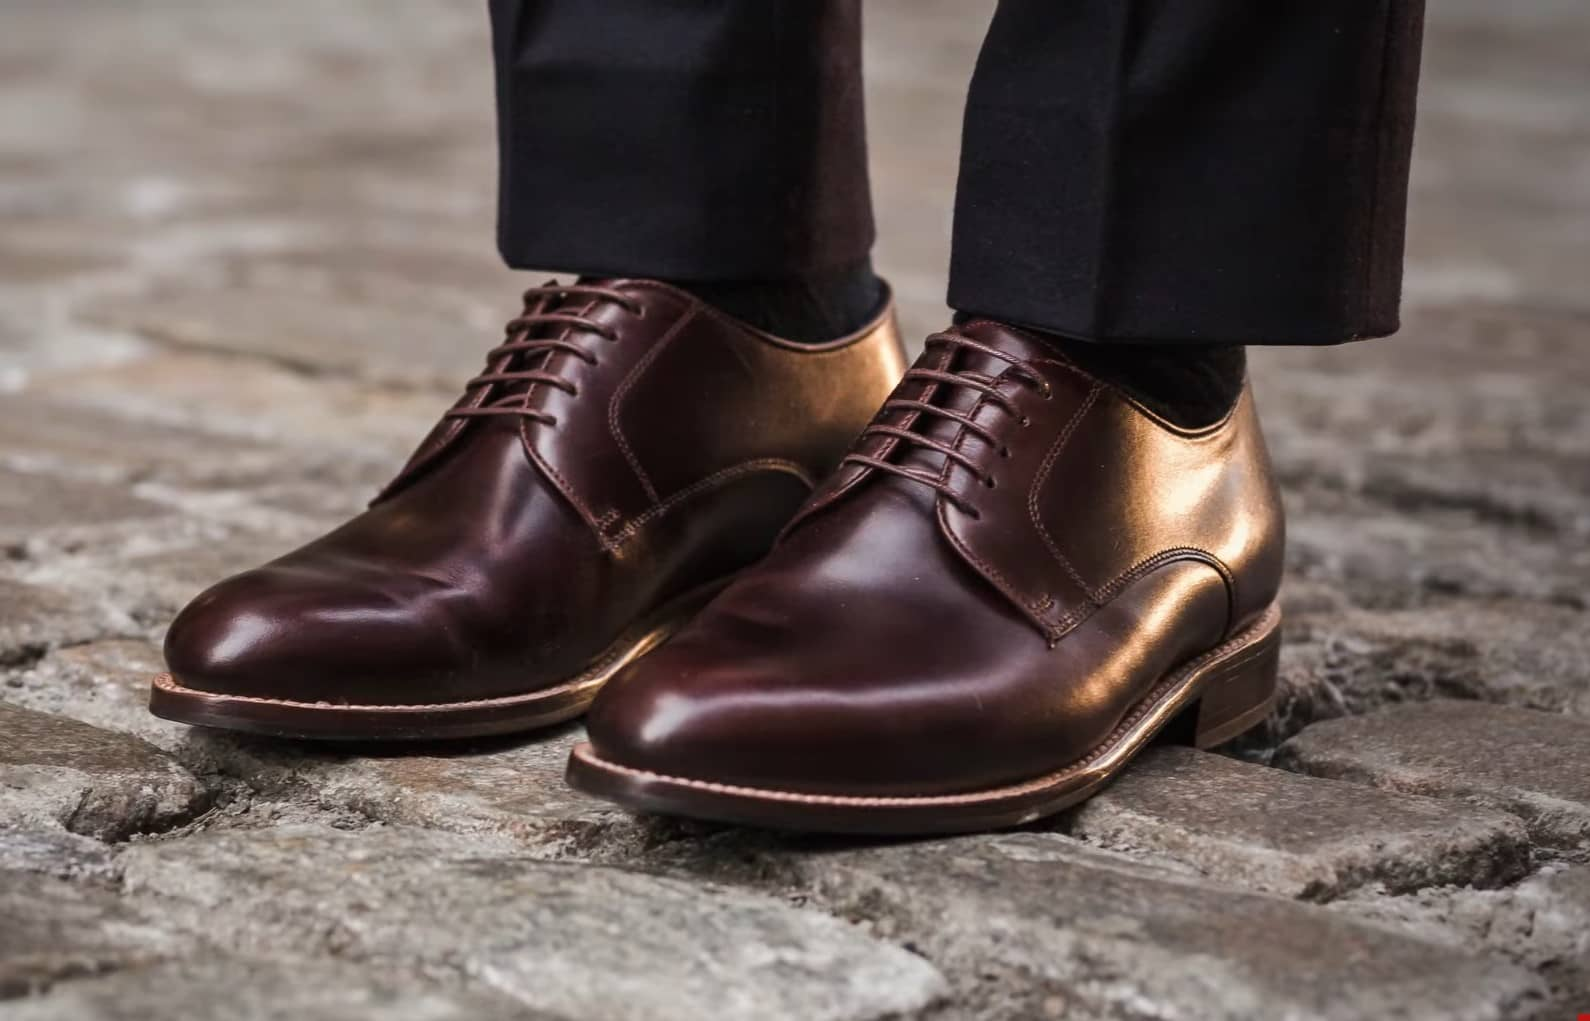 7 Best Goodyear Welted Shoes for Men